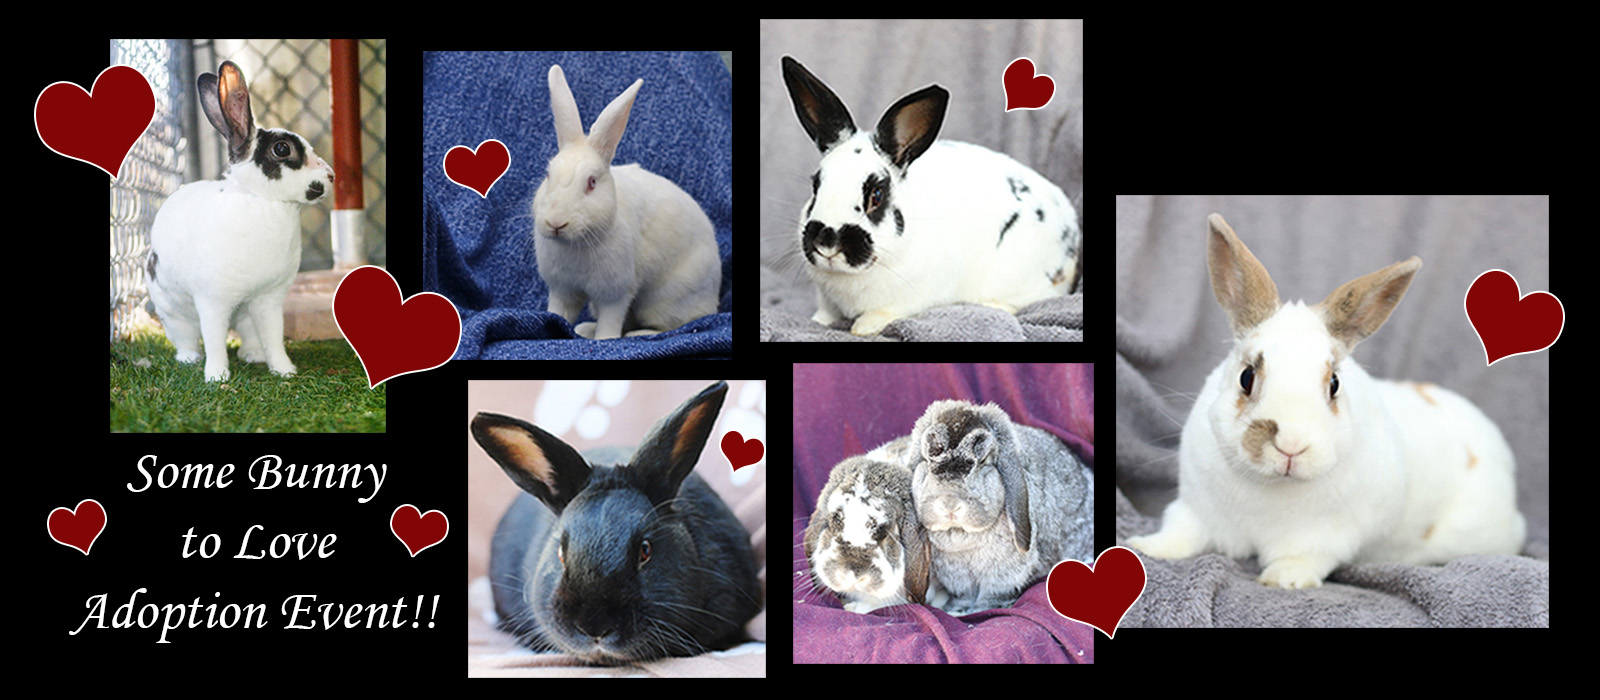 Some Bunny to Love Adoption Event